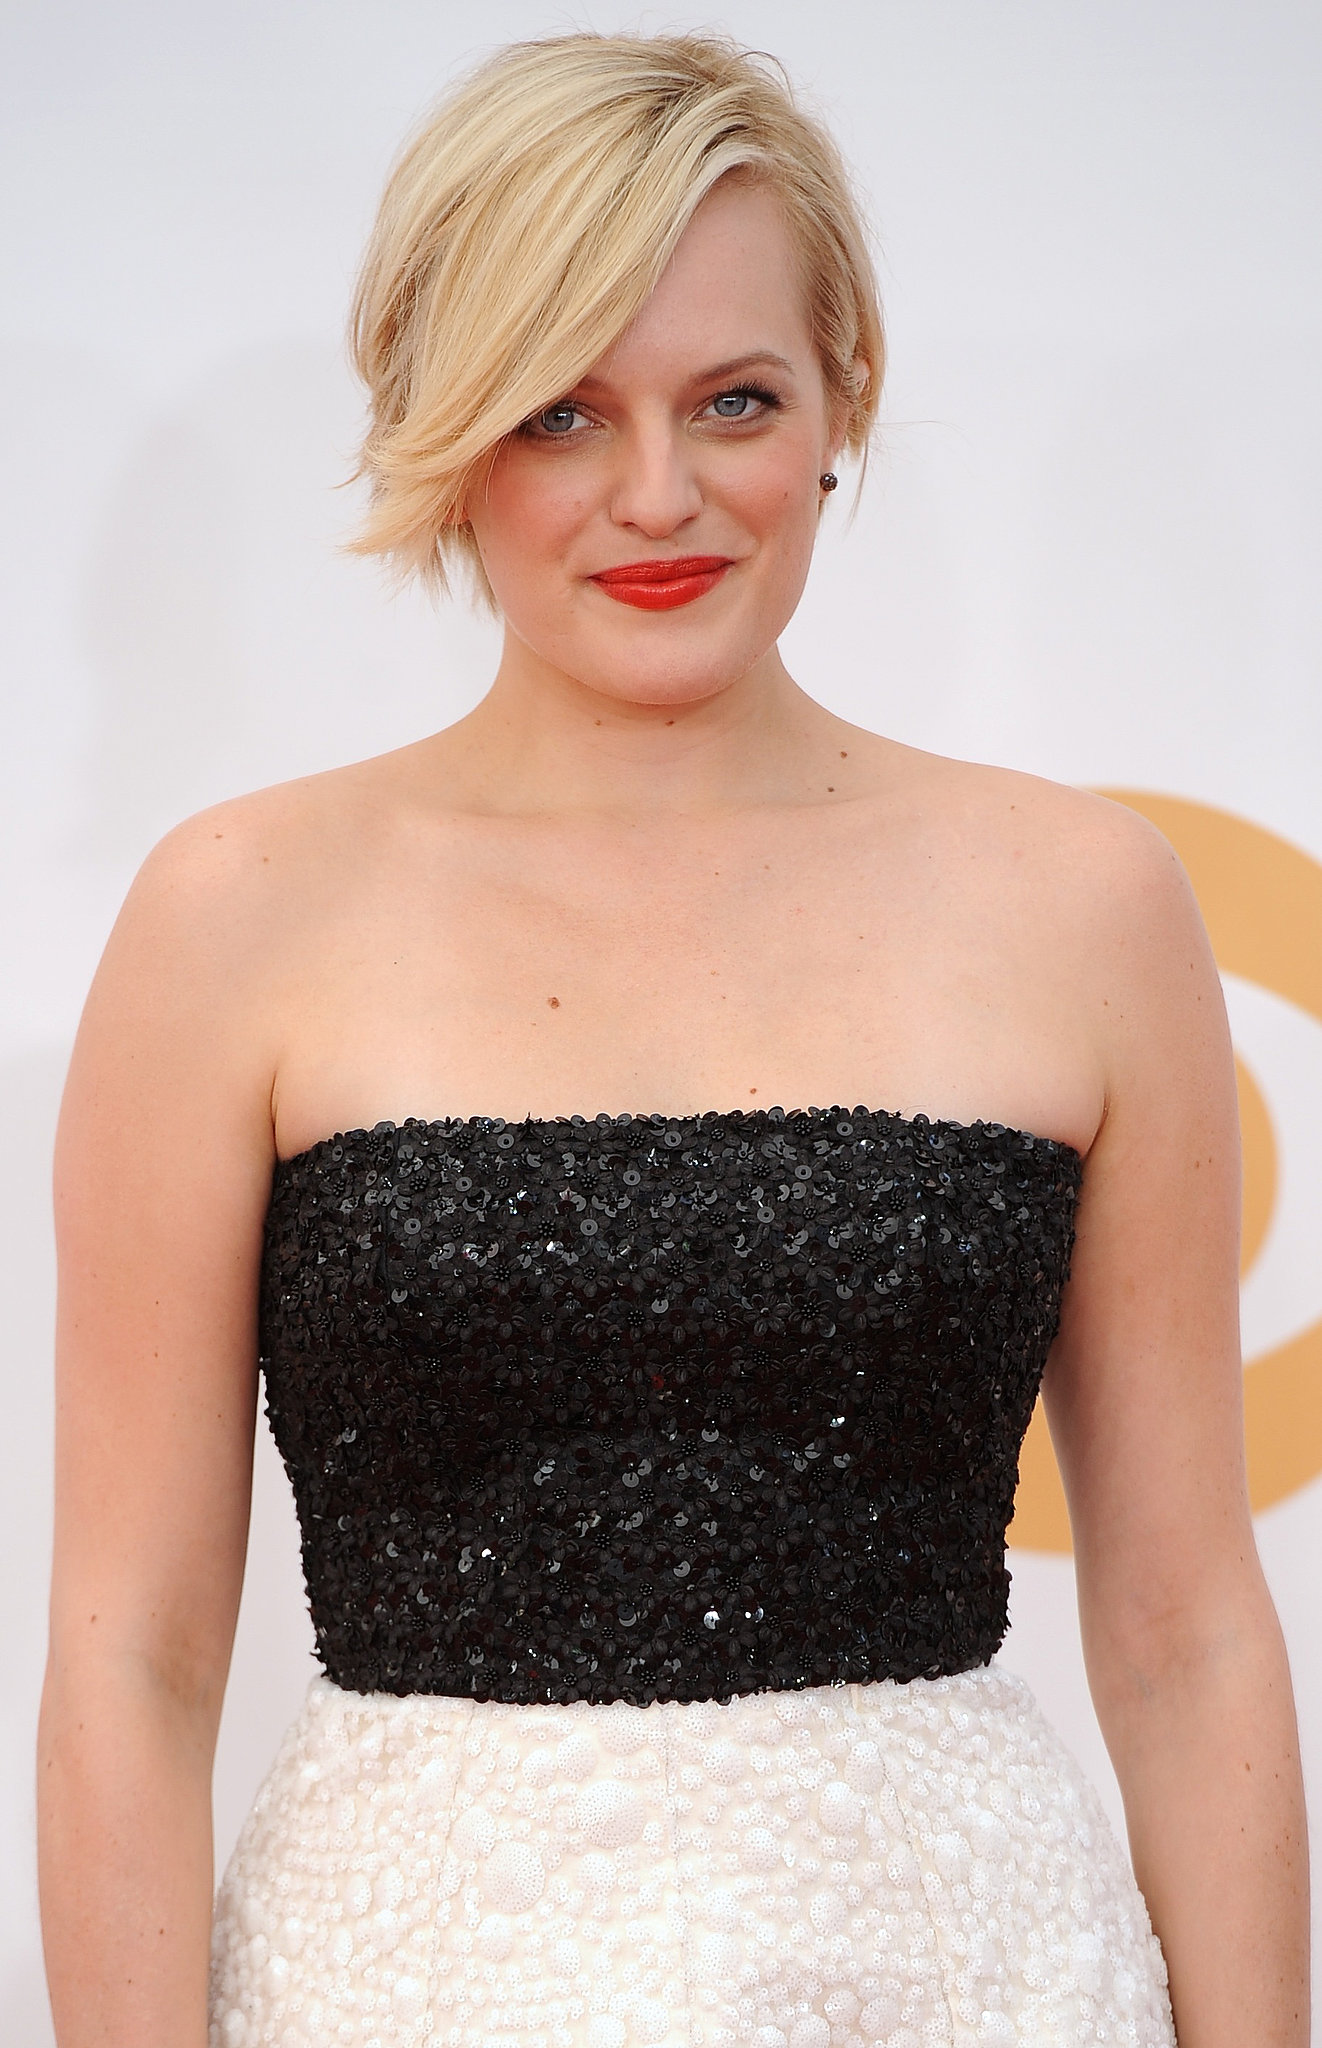 This tomato-red lipstick on Elisabeth Moss provided just the right amount of color to pair with her platinum coif and black and w